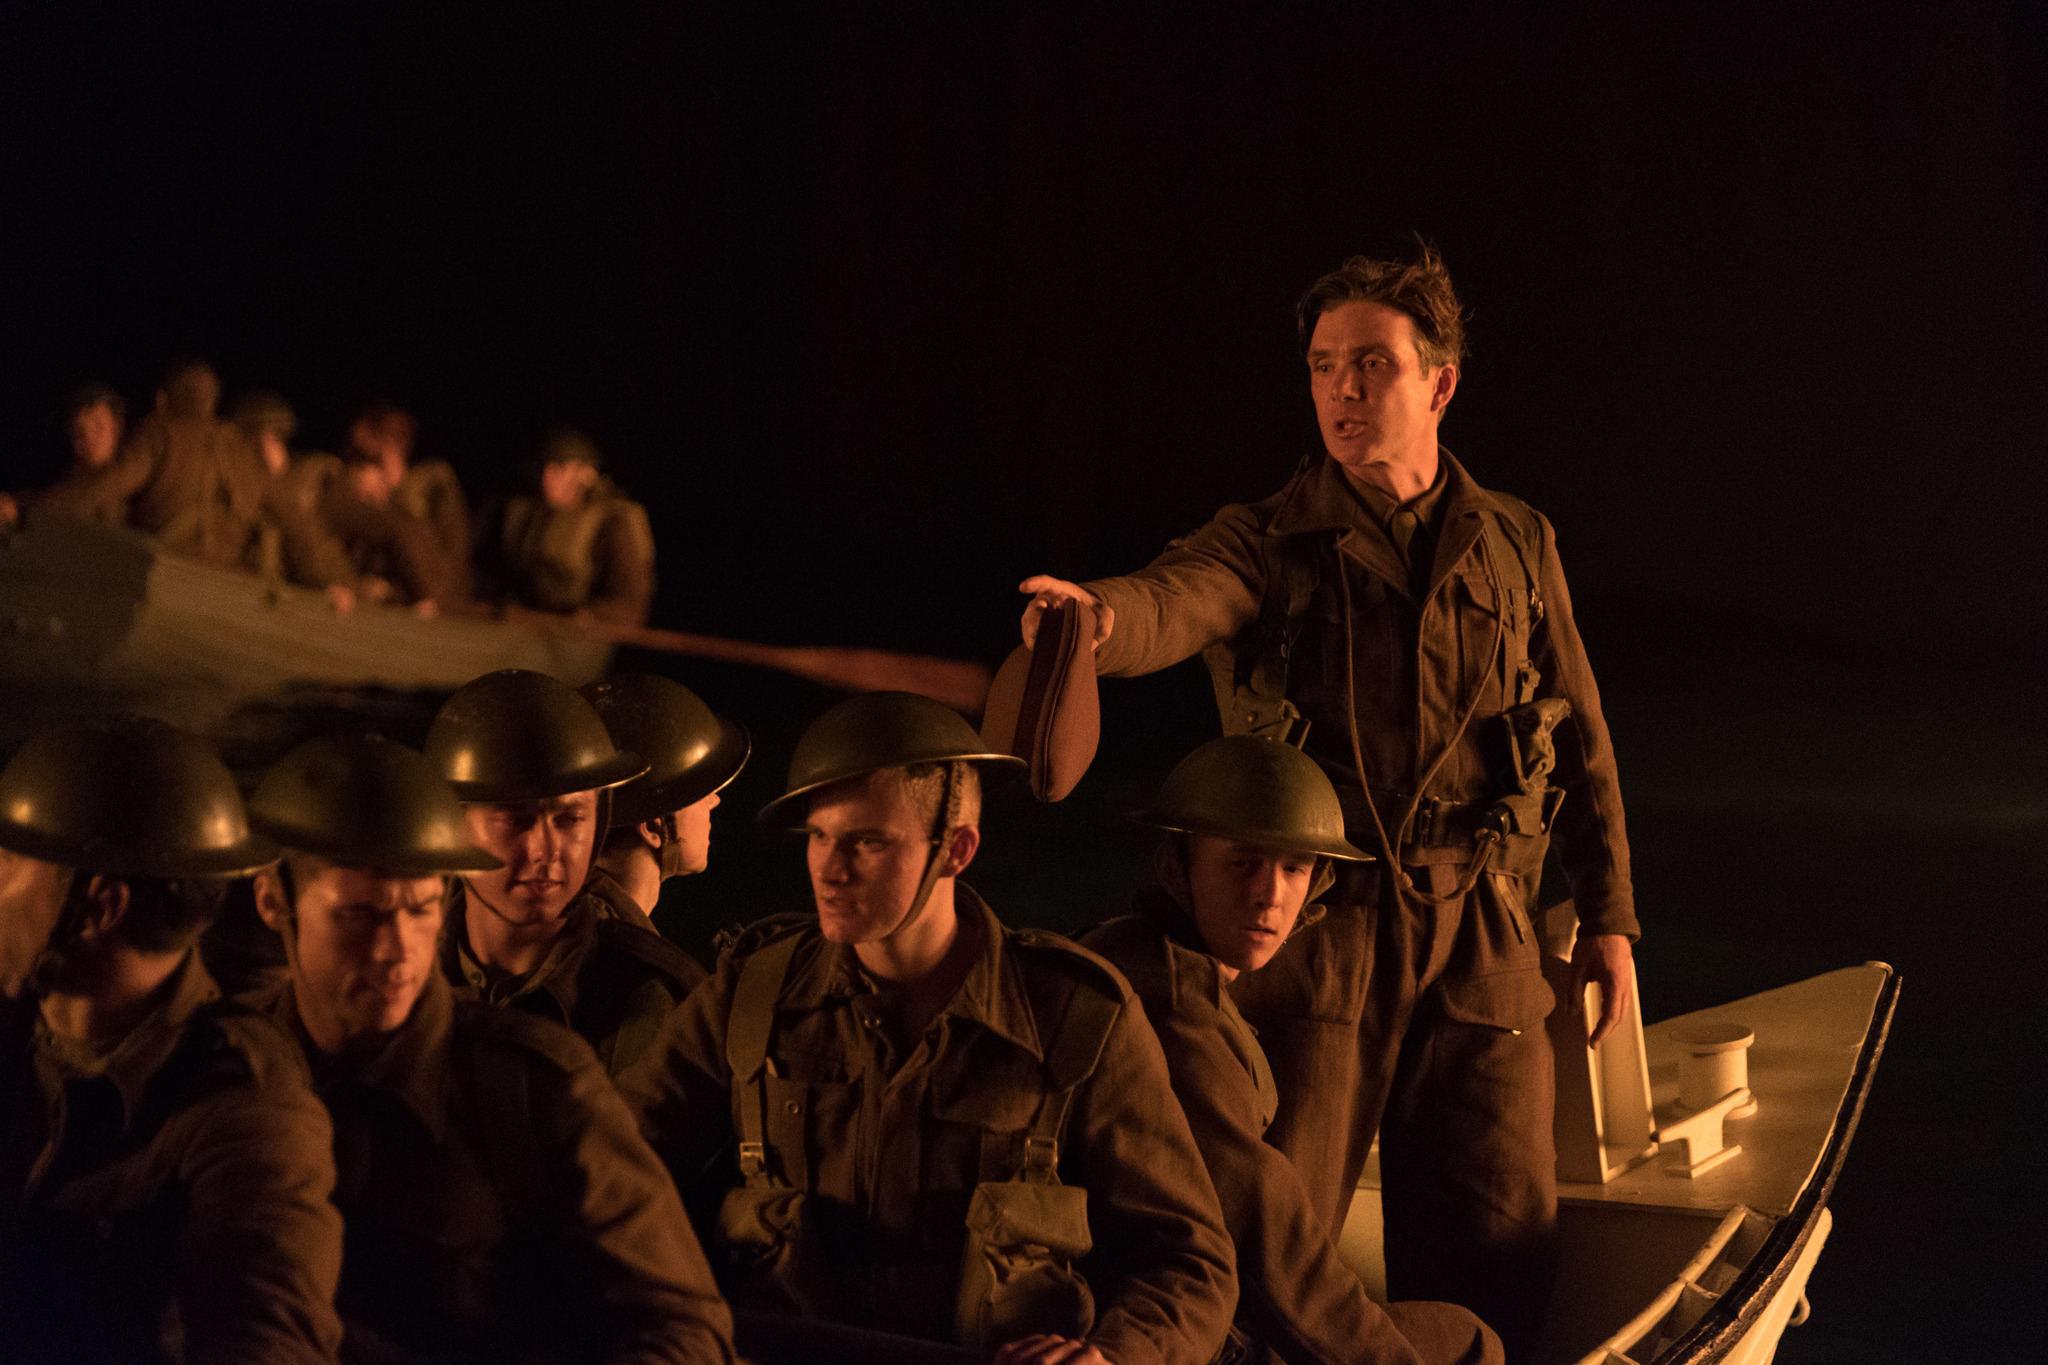 Cillian Murphy in Dunkirk (2017)